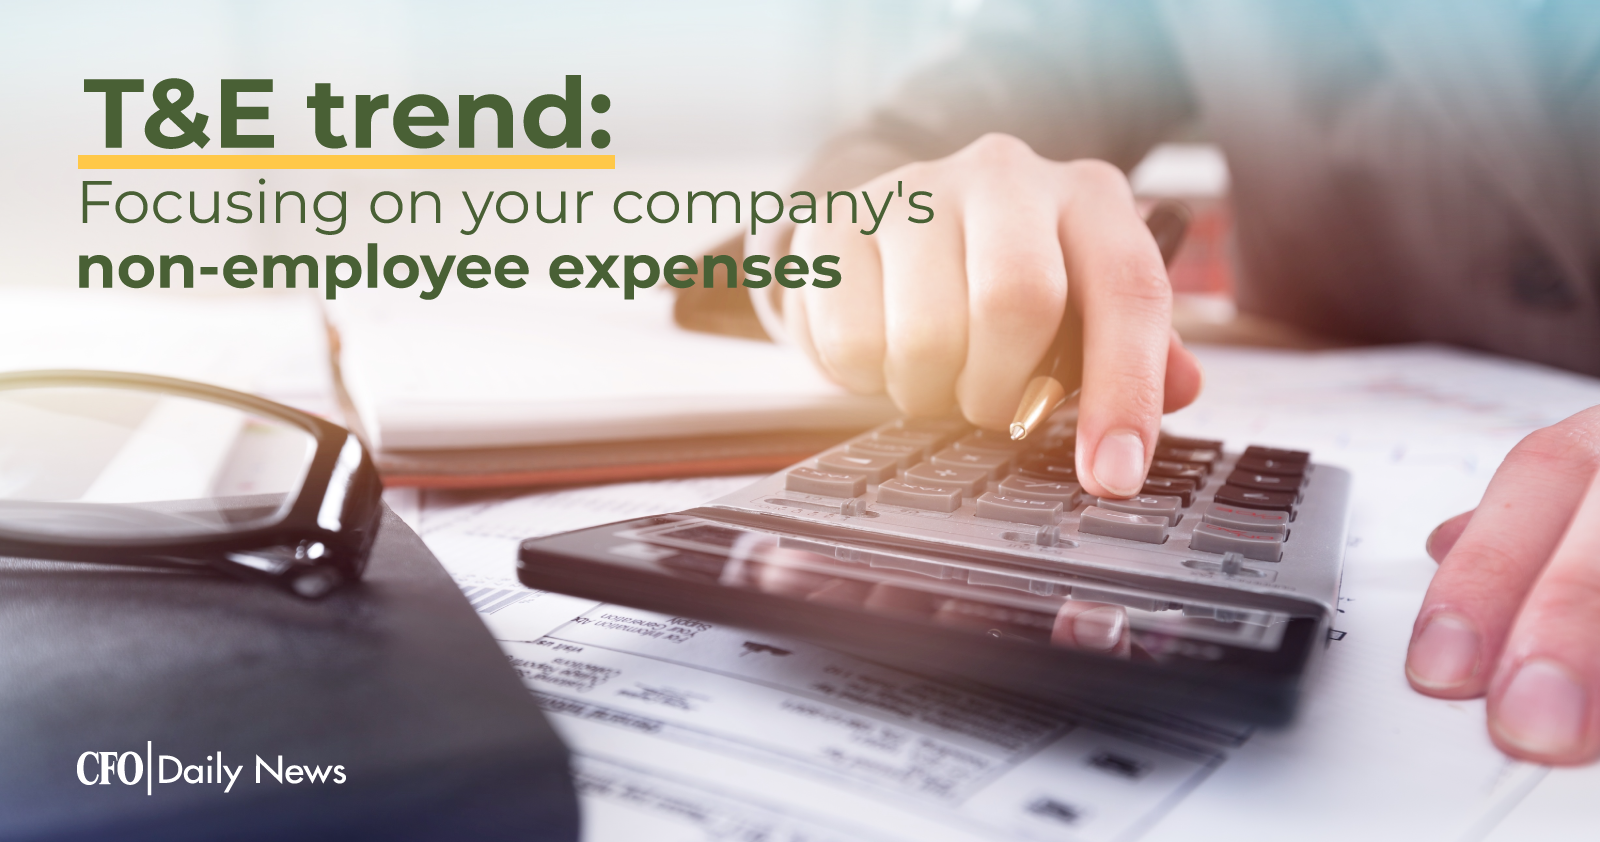 T and E trend: Focusing on your company's non-employee expenses